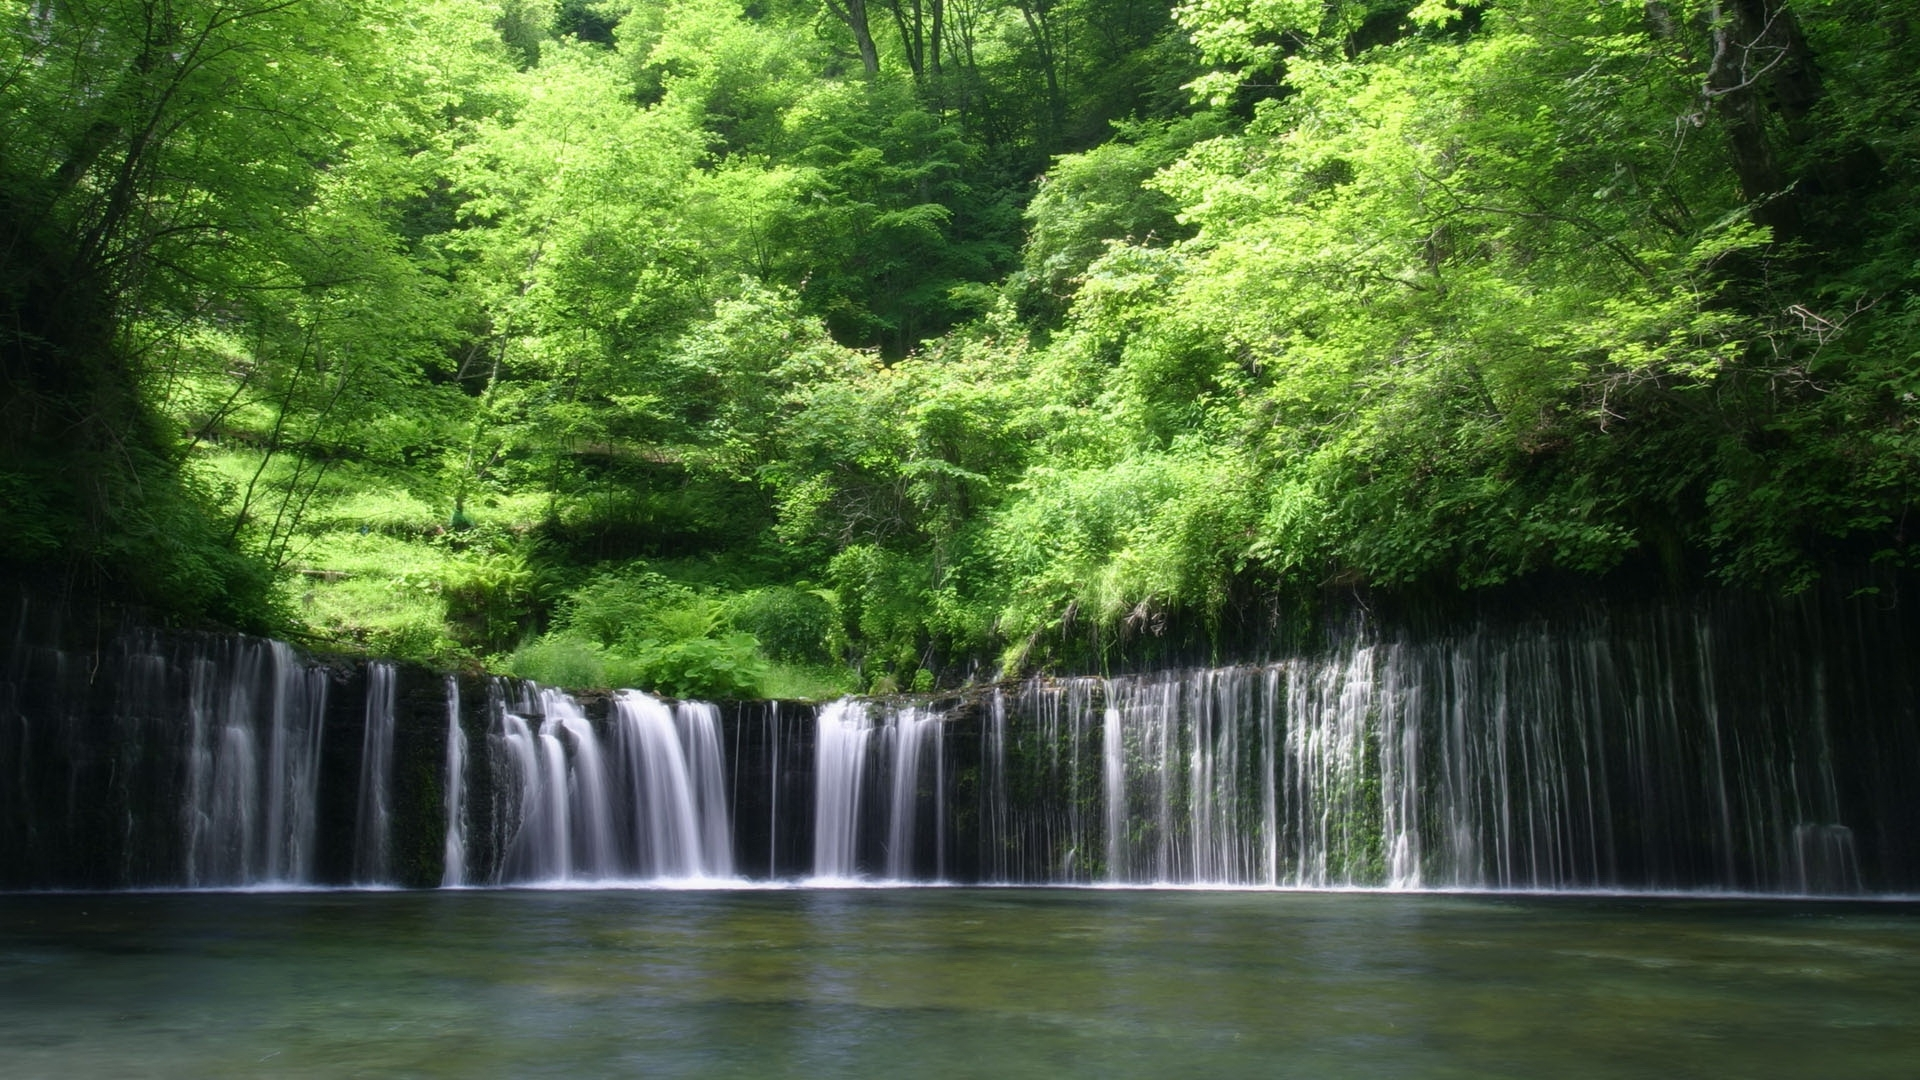 29634 download wallpaper Landscape, Waterfalls screensavers and pictures for free